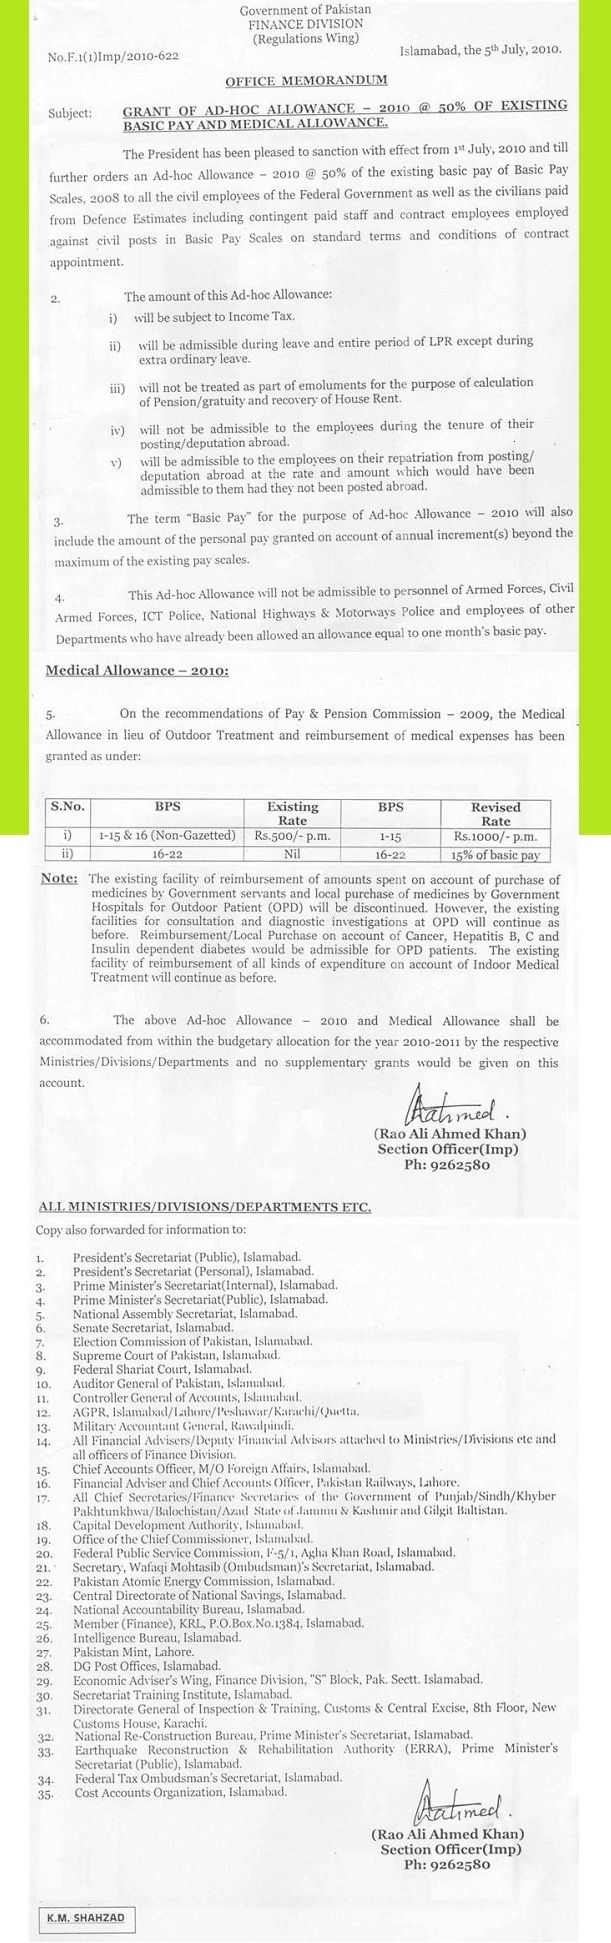 Finance Division Notification of Adhoc allowance 2010 dated July 5, 2010